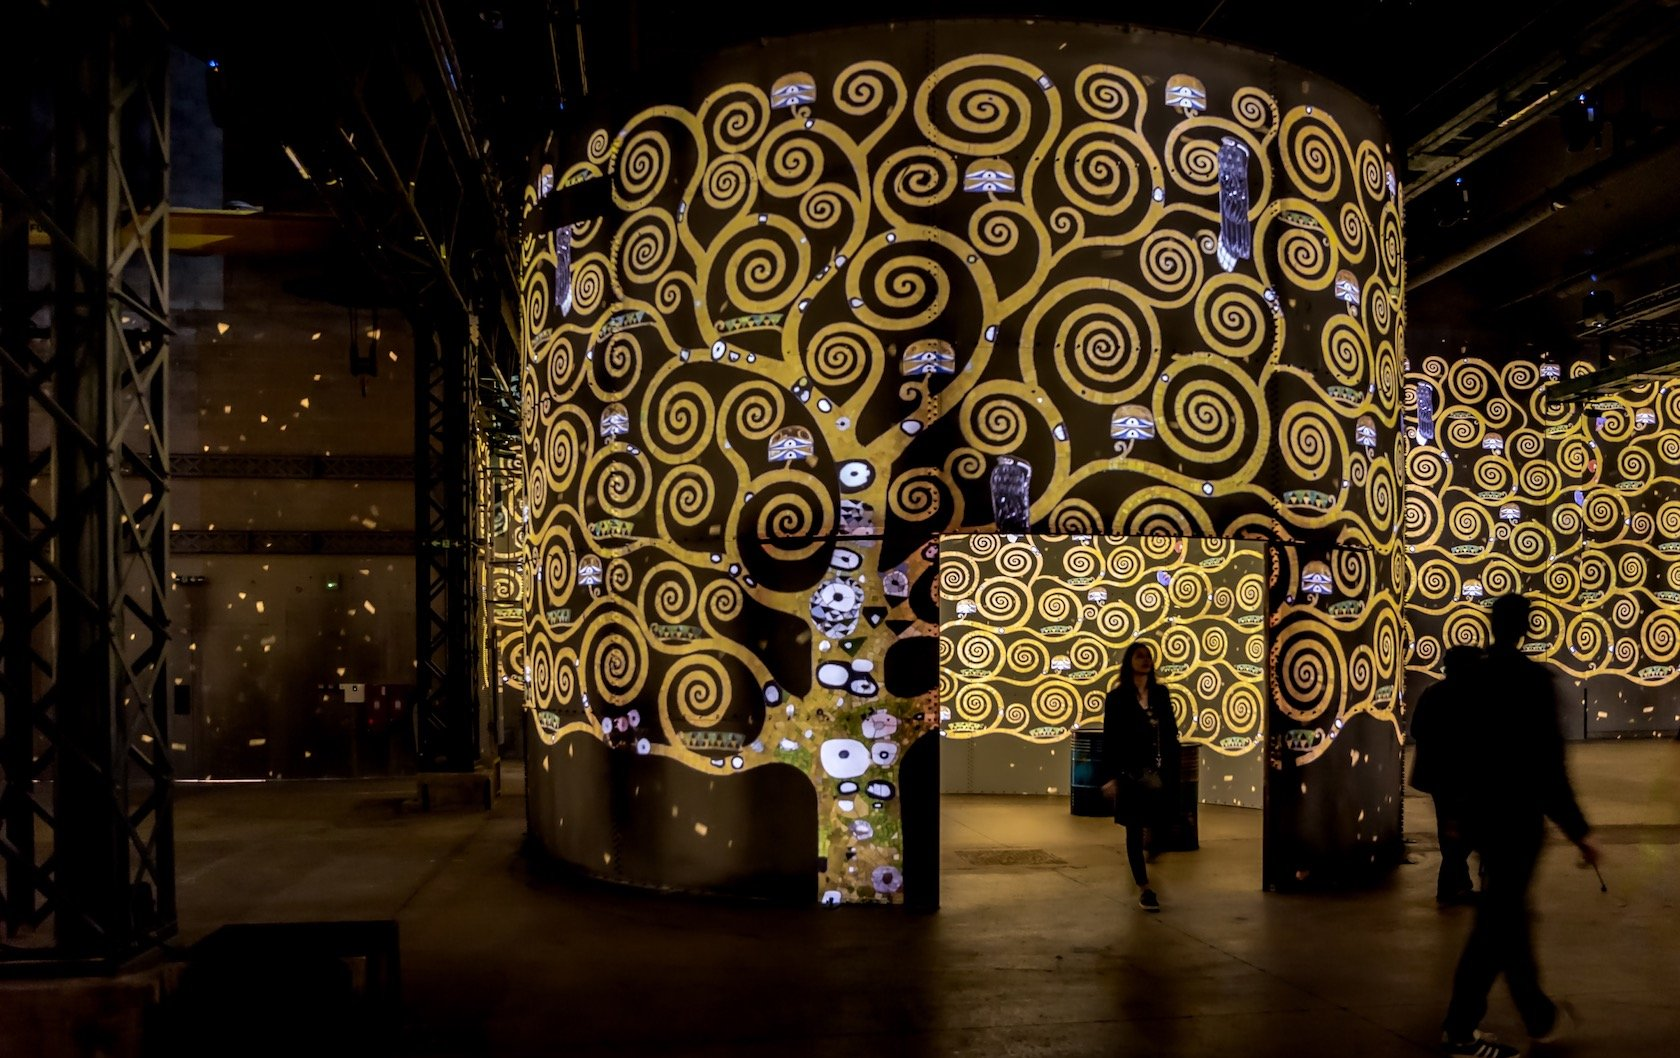 Atelier des Lumières and Musée Yves Saint Laurent: Visit these New Museums in Paris